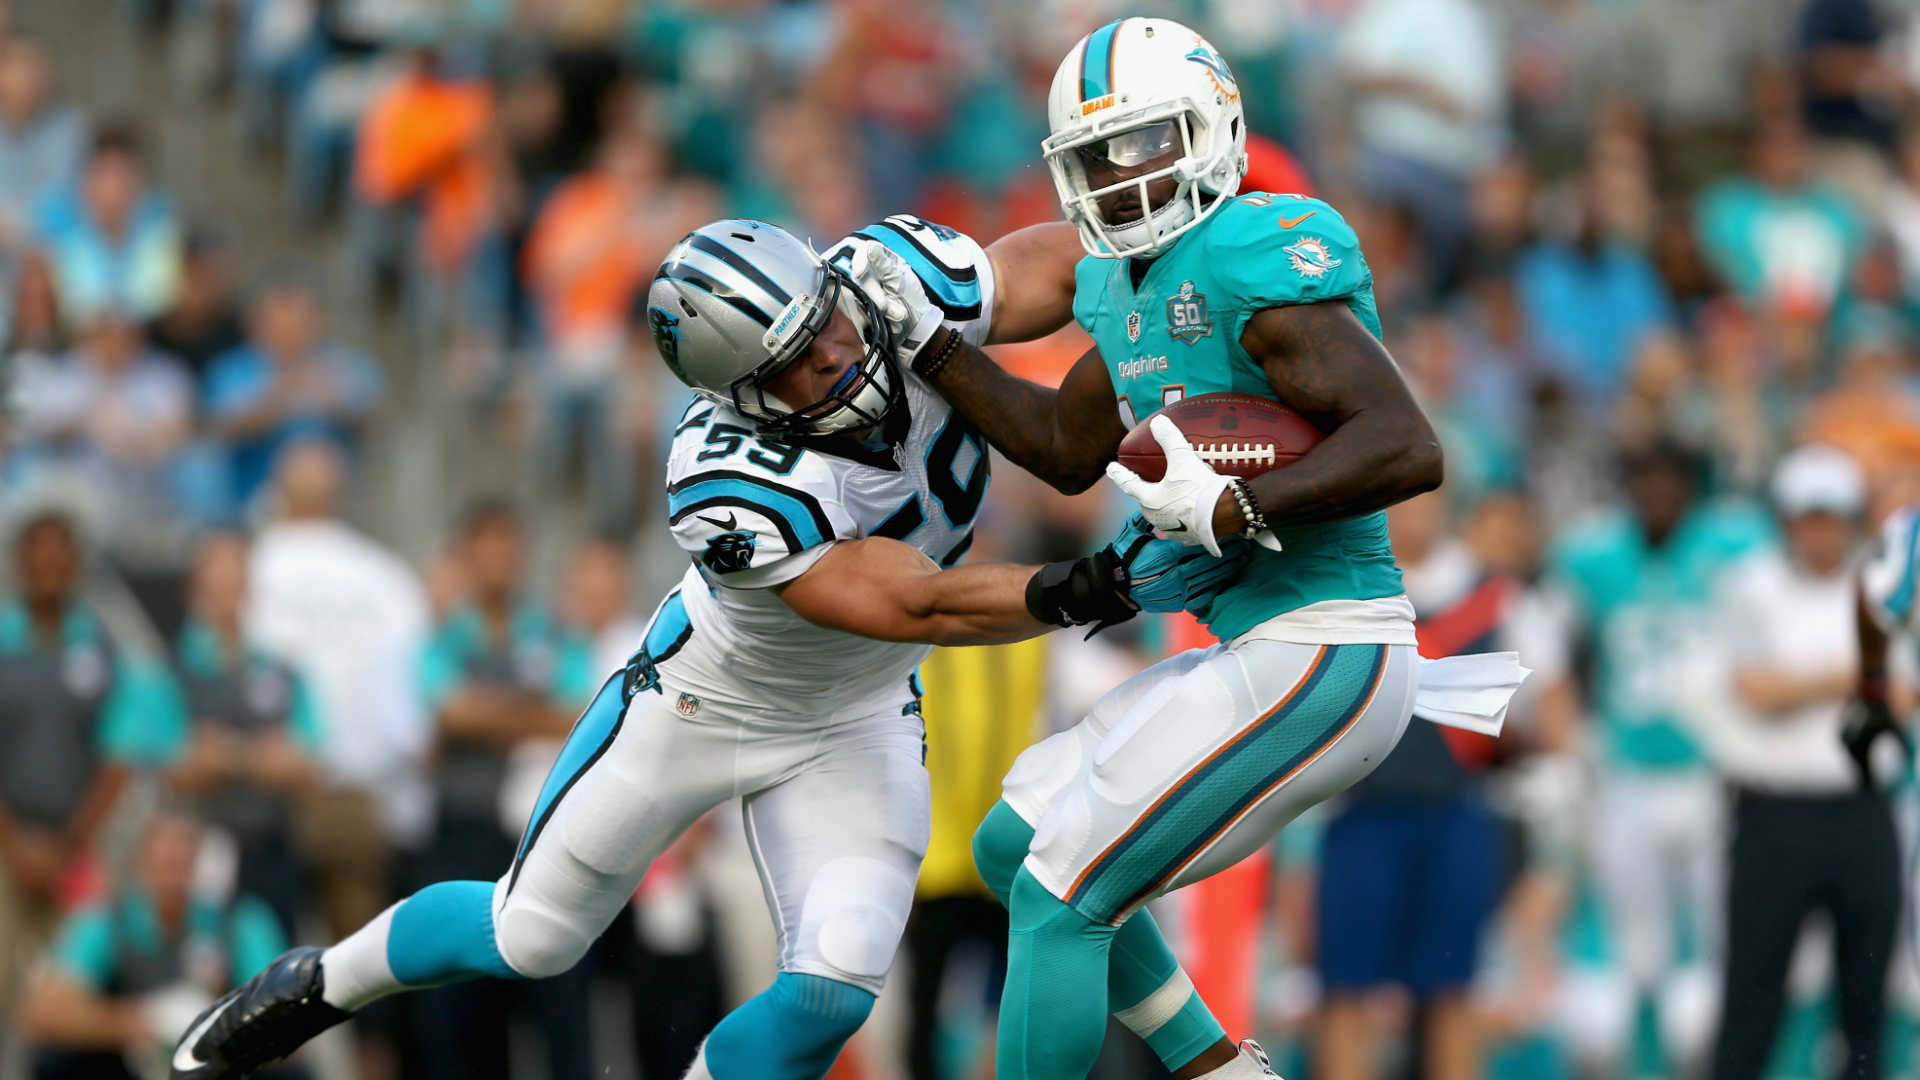 Dolphins Jarvis Landry LaMike James reportedly fought at team